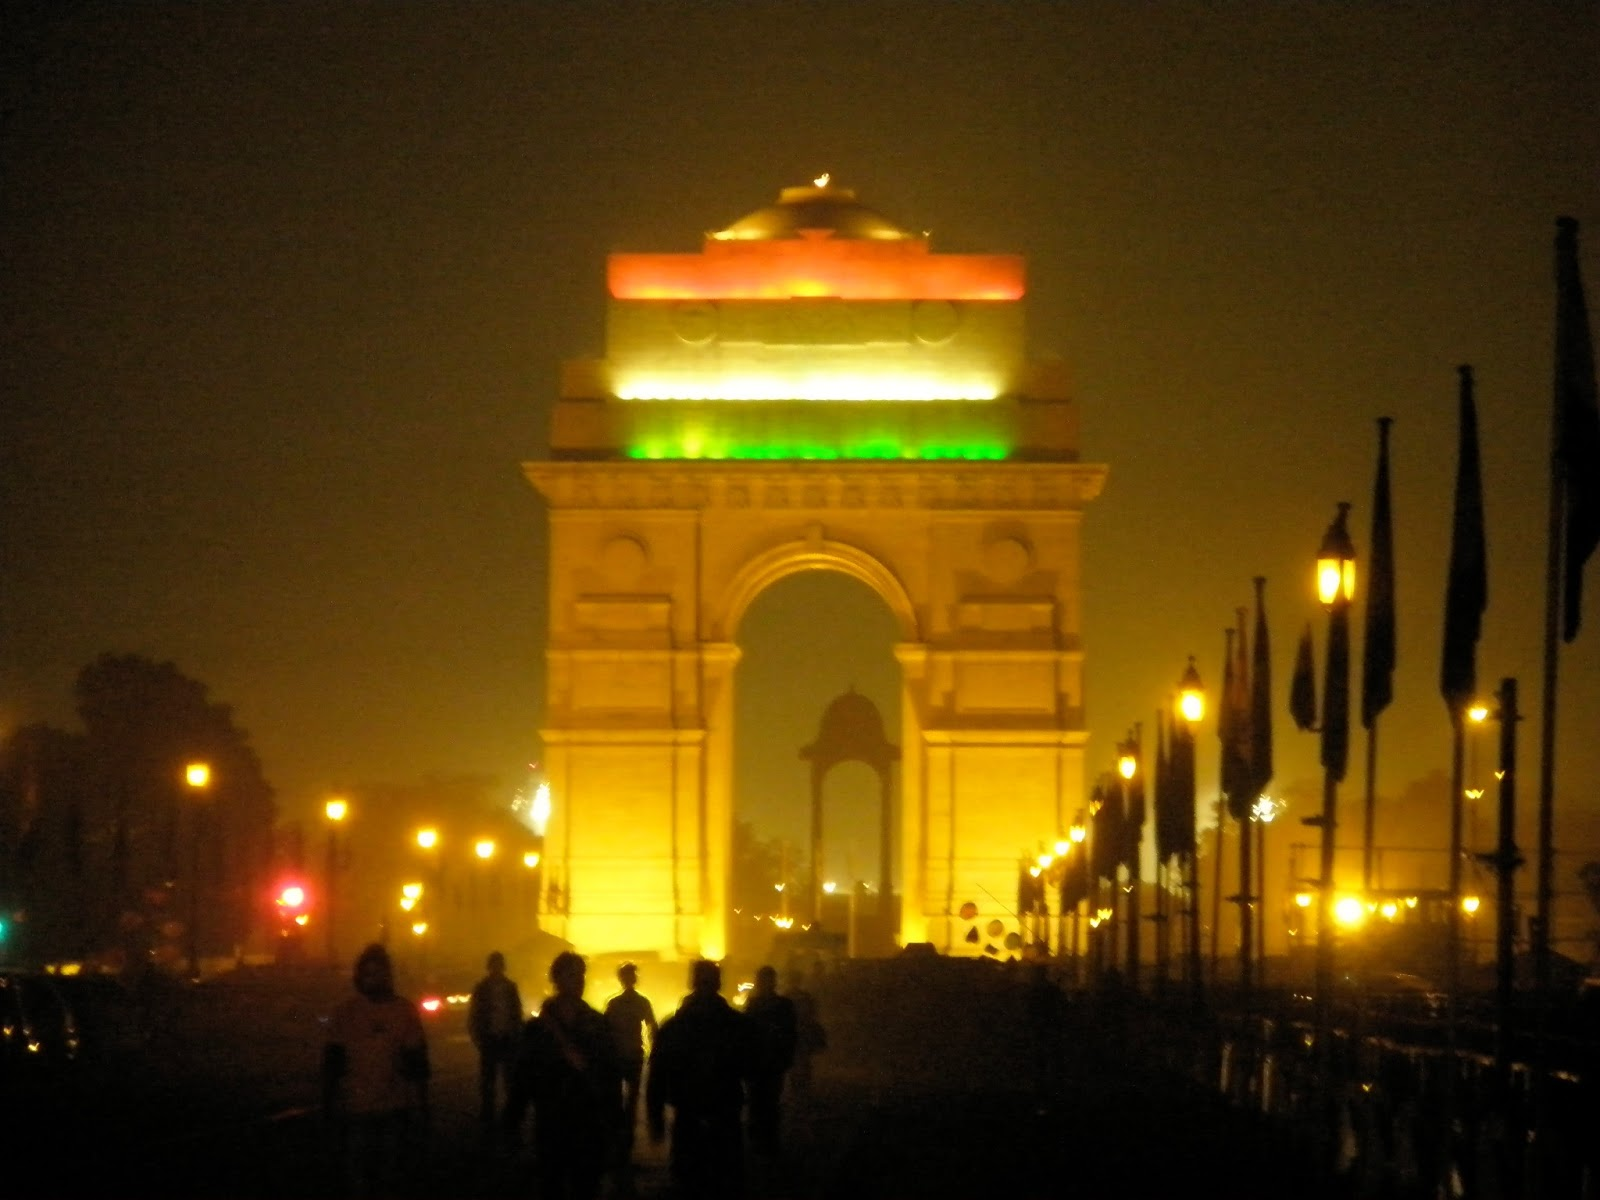 Hd wallpapers fine india gate delhi high resolution full for India wallpaper 3d